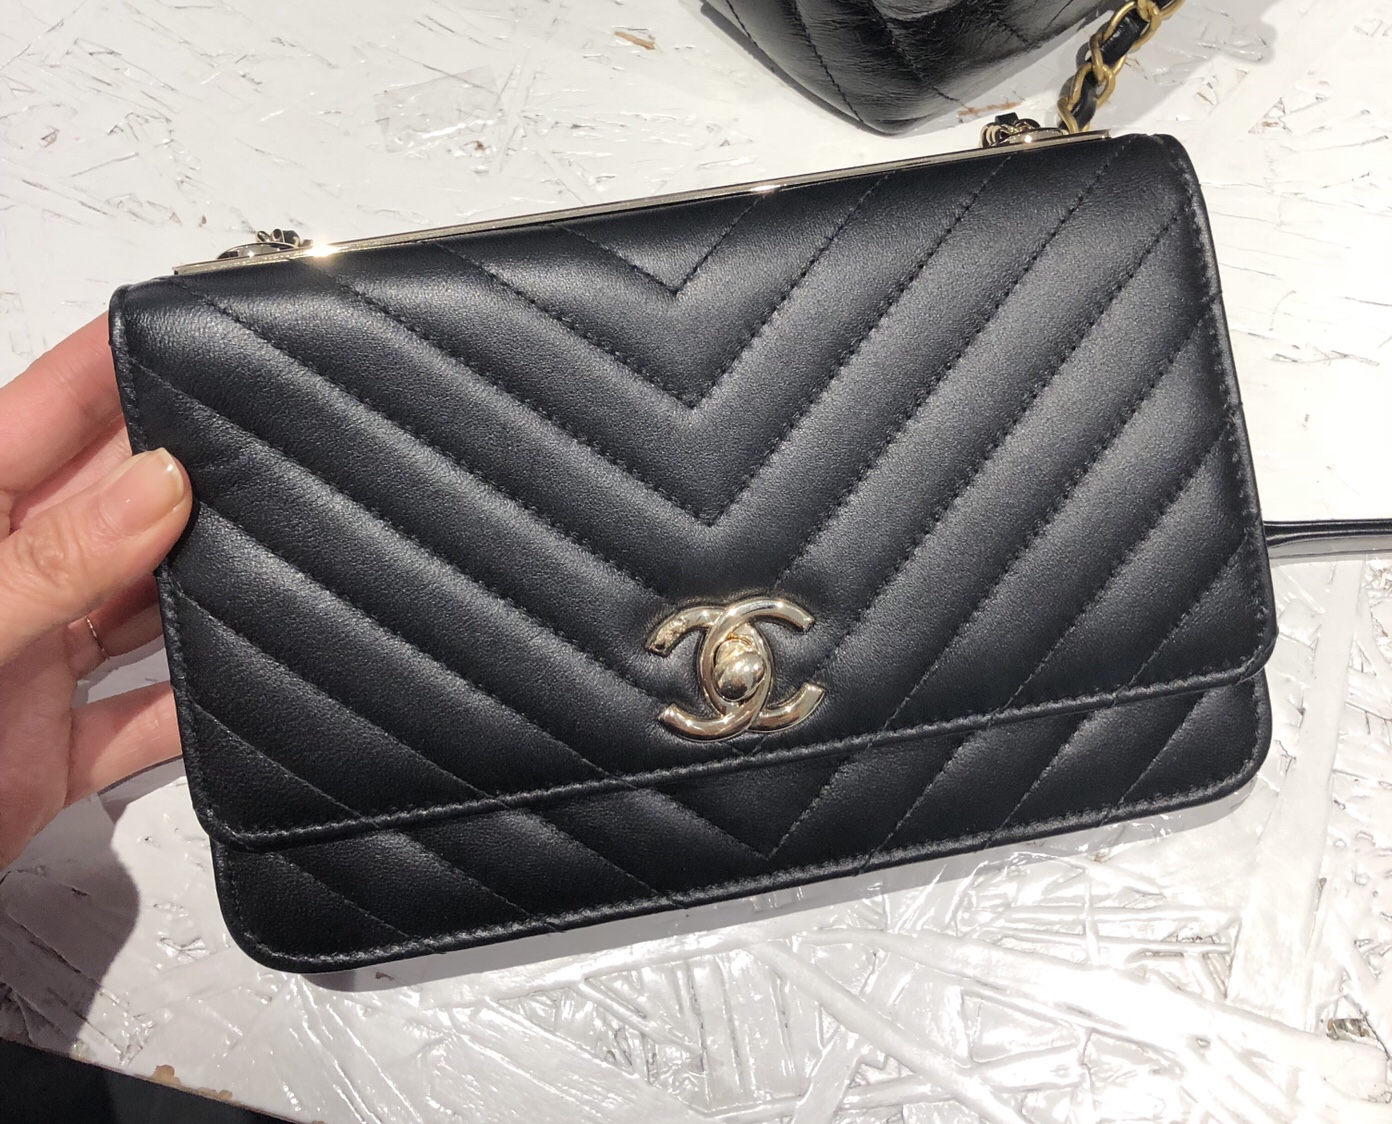 Mini Vs Woc Chanel Woc Small Bags Size Price Comparison